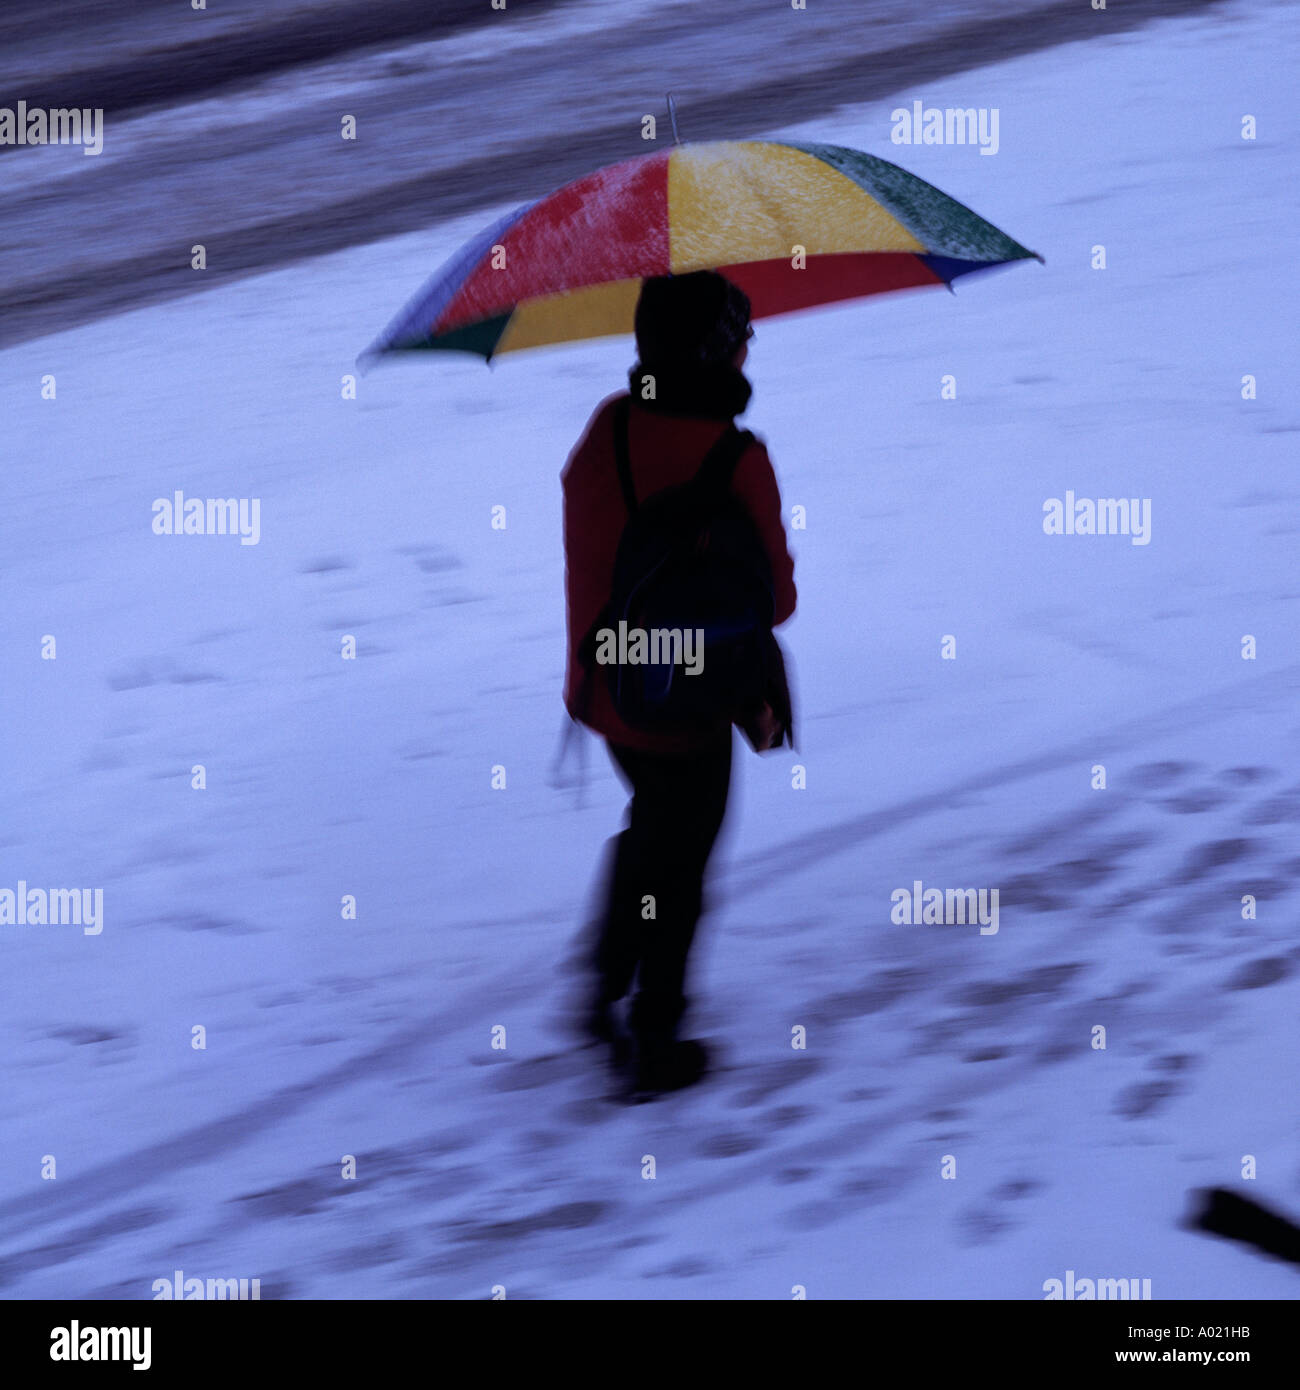 weather, winter, walker with umbrella, winter clothes, clothing, wintry dressed, walking in the snow, stroll, walk, Stock Photo